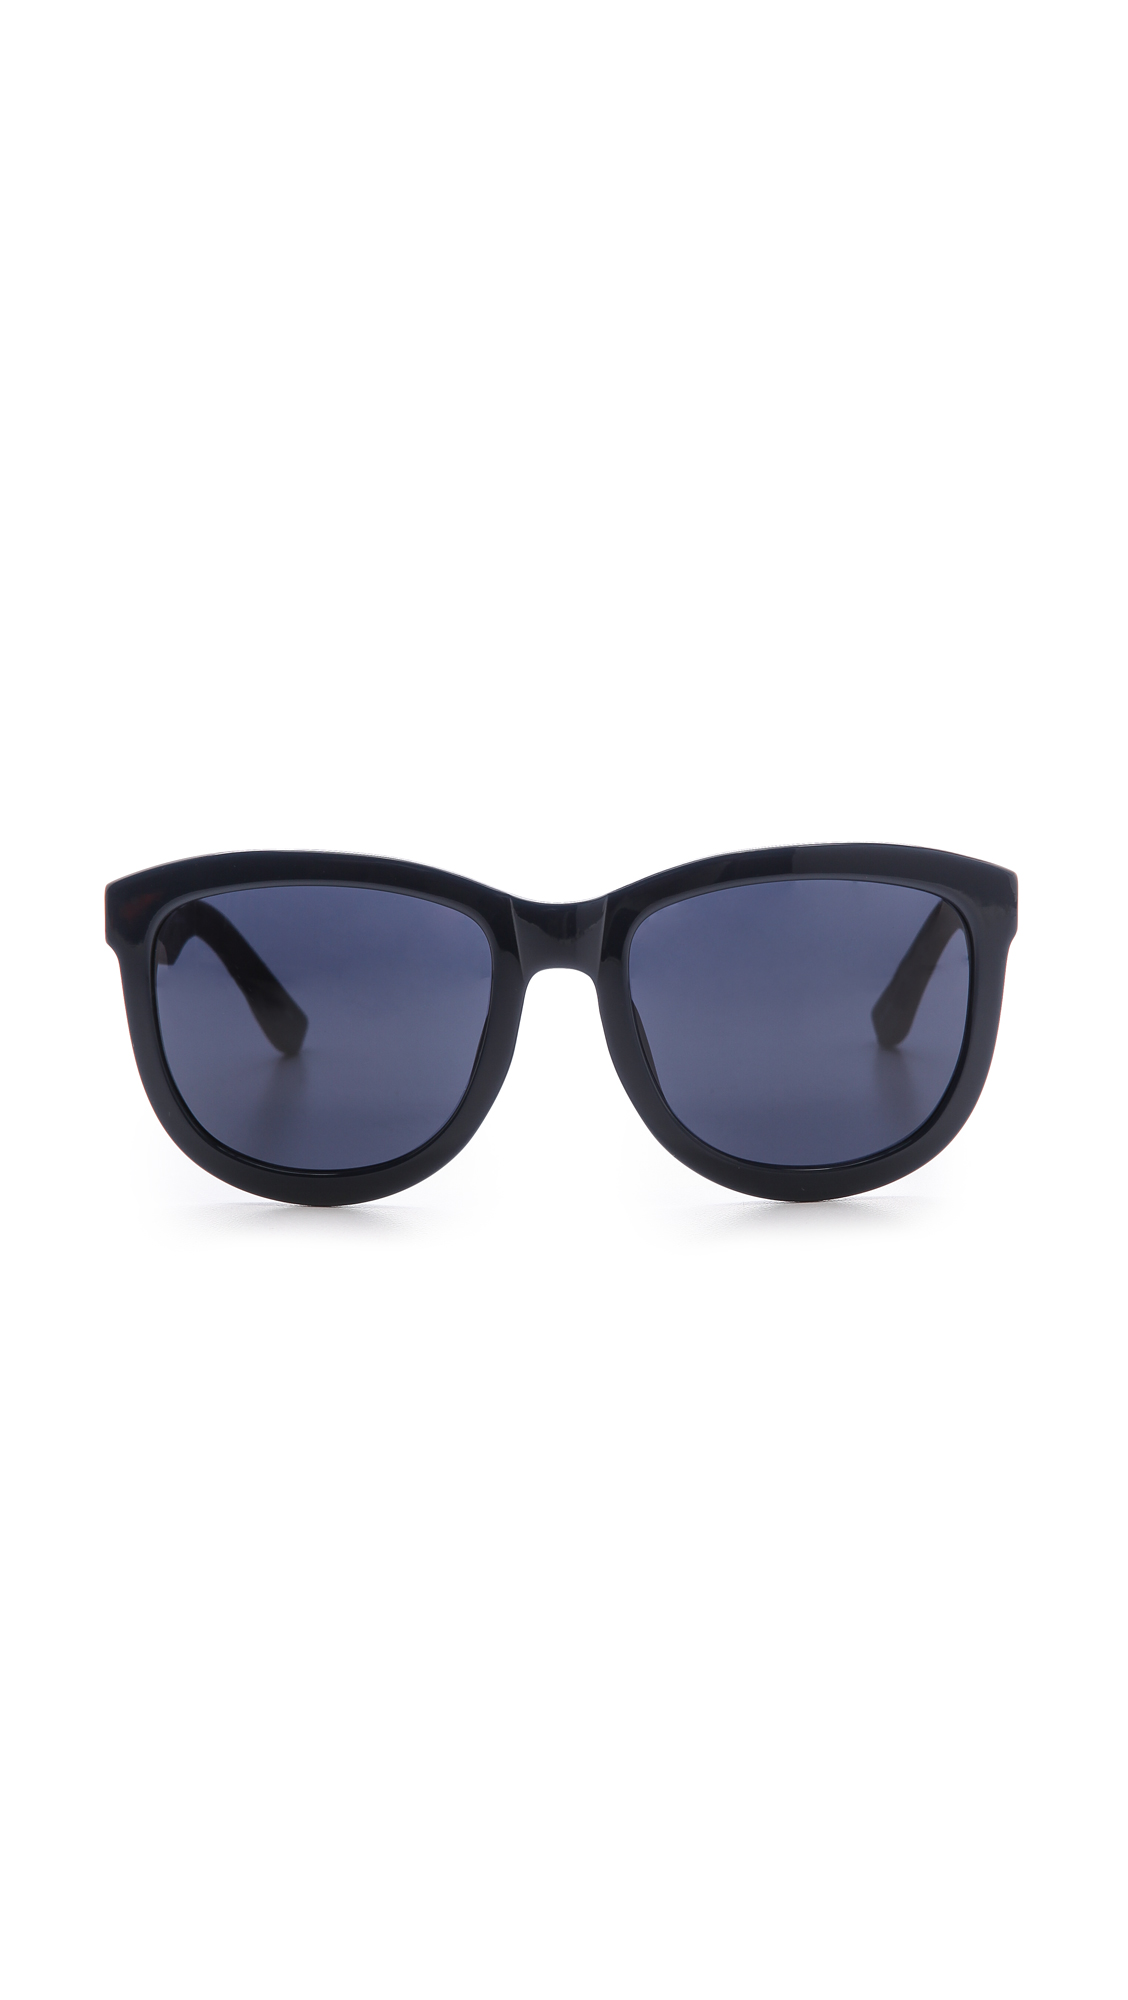 9271dfb77063 The Row Leather Sunglasses